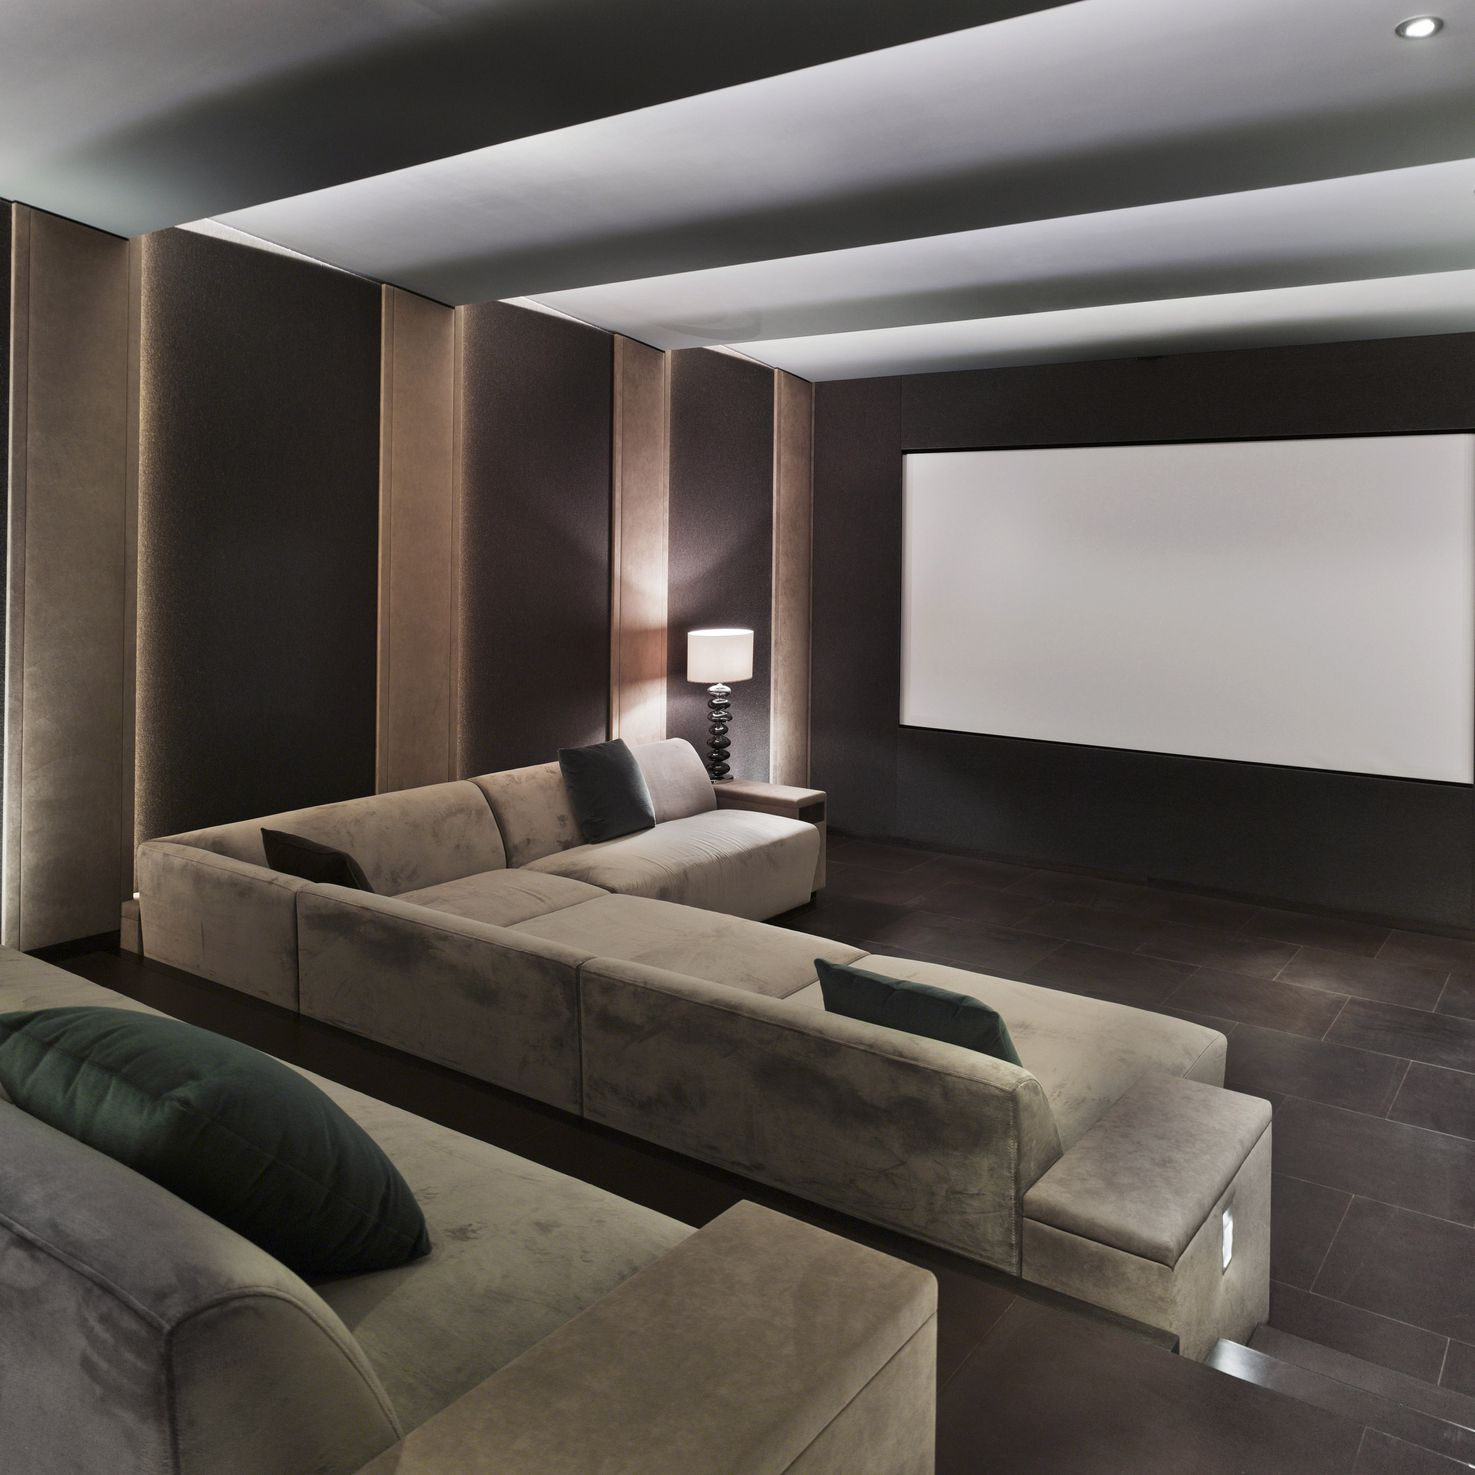 The 8 Best Home Theater Seating Options of 2019 Sloped Ceiling Design Home Theatre on coved ceiling designs, flat ceiling designs, angled ceiling designs, coffered ceiling designs, small ceiling designs, tilted ceiling designs, slanted ceiling designs, open ceiling designs, vaulted ceiling designs, slanting ceiling designs, commercial ceiling designs, square ceiling designs, kitchen ceiling designs, ceiling fan designs, corner ceiling designs, metal ceiling designs, beadboard ceiling designs, interior ceiling designs, curved ceiling designs,